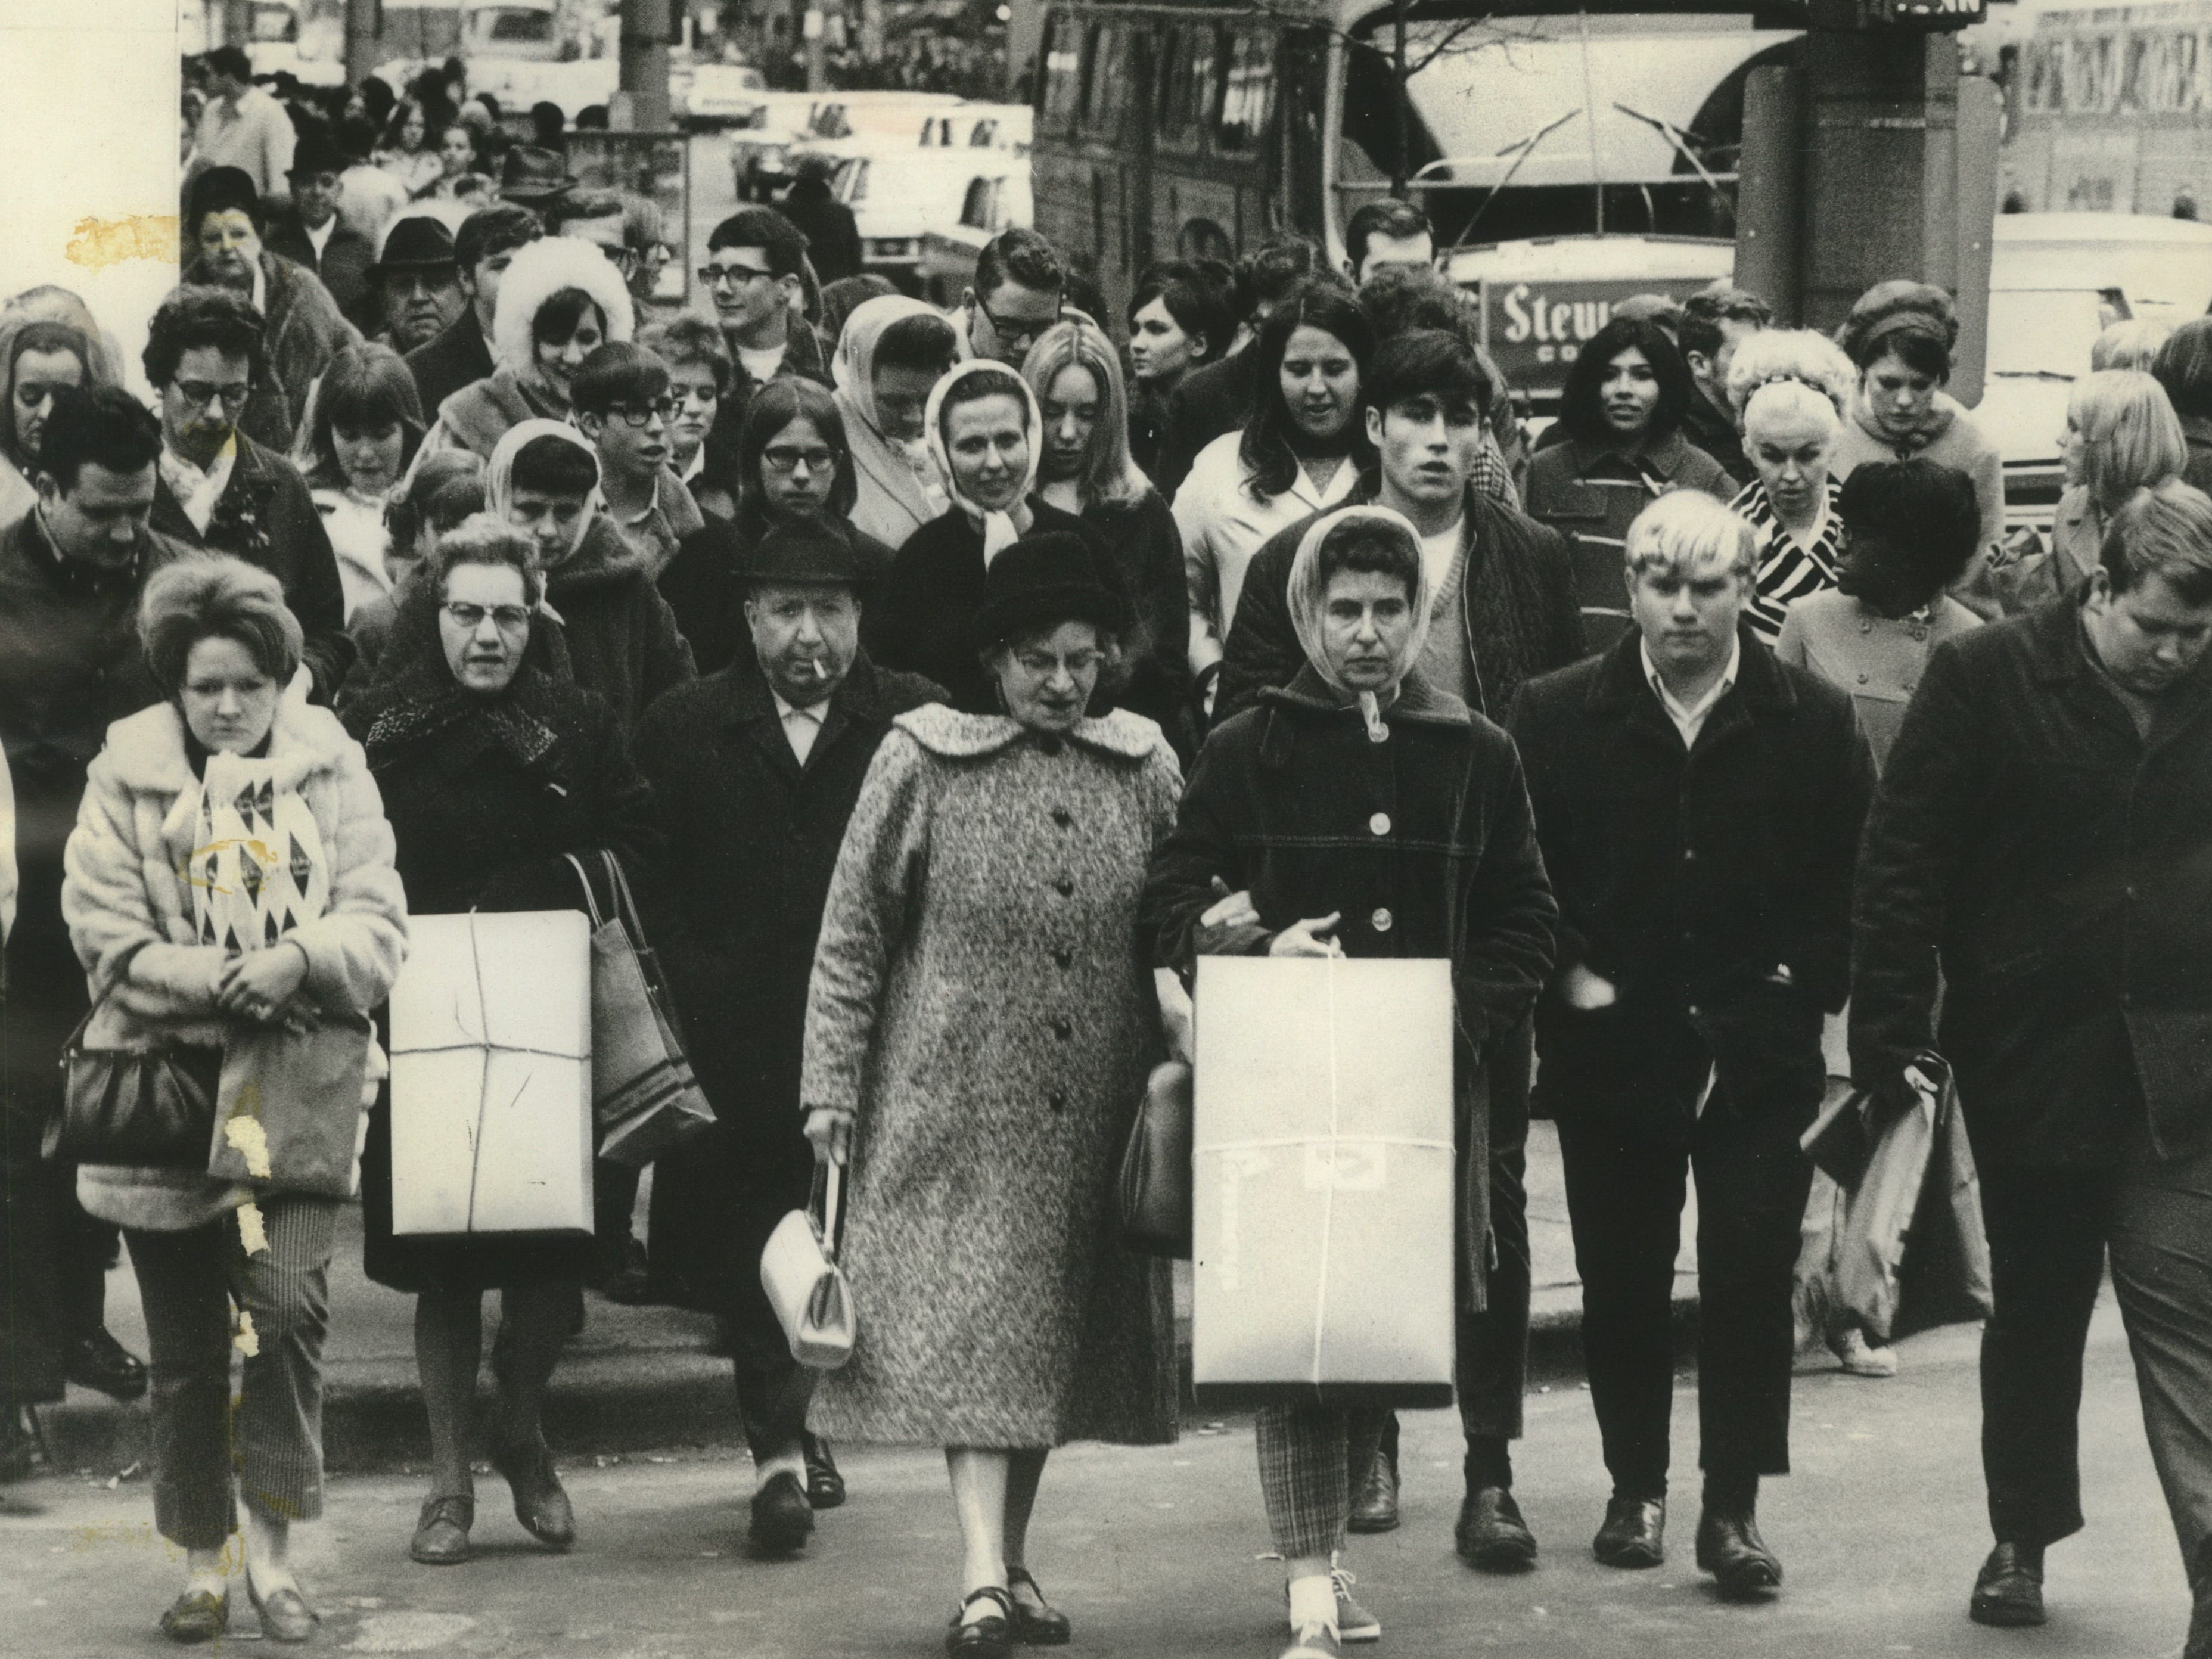 City sidewalks were busy sidewalks on the day after Thanksgiving, as shoppers clogged the walkways along Wisconsin Avenue at Plankinton Avenue on Nov. 29, 1968. This photo was published in the Nov. 30, 1968, Milwaukee Journal.